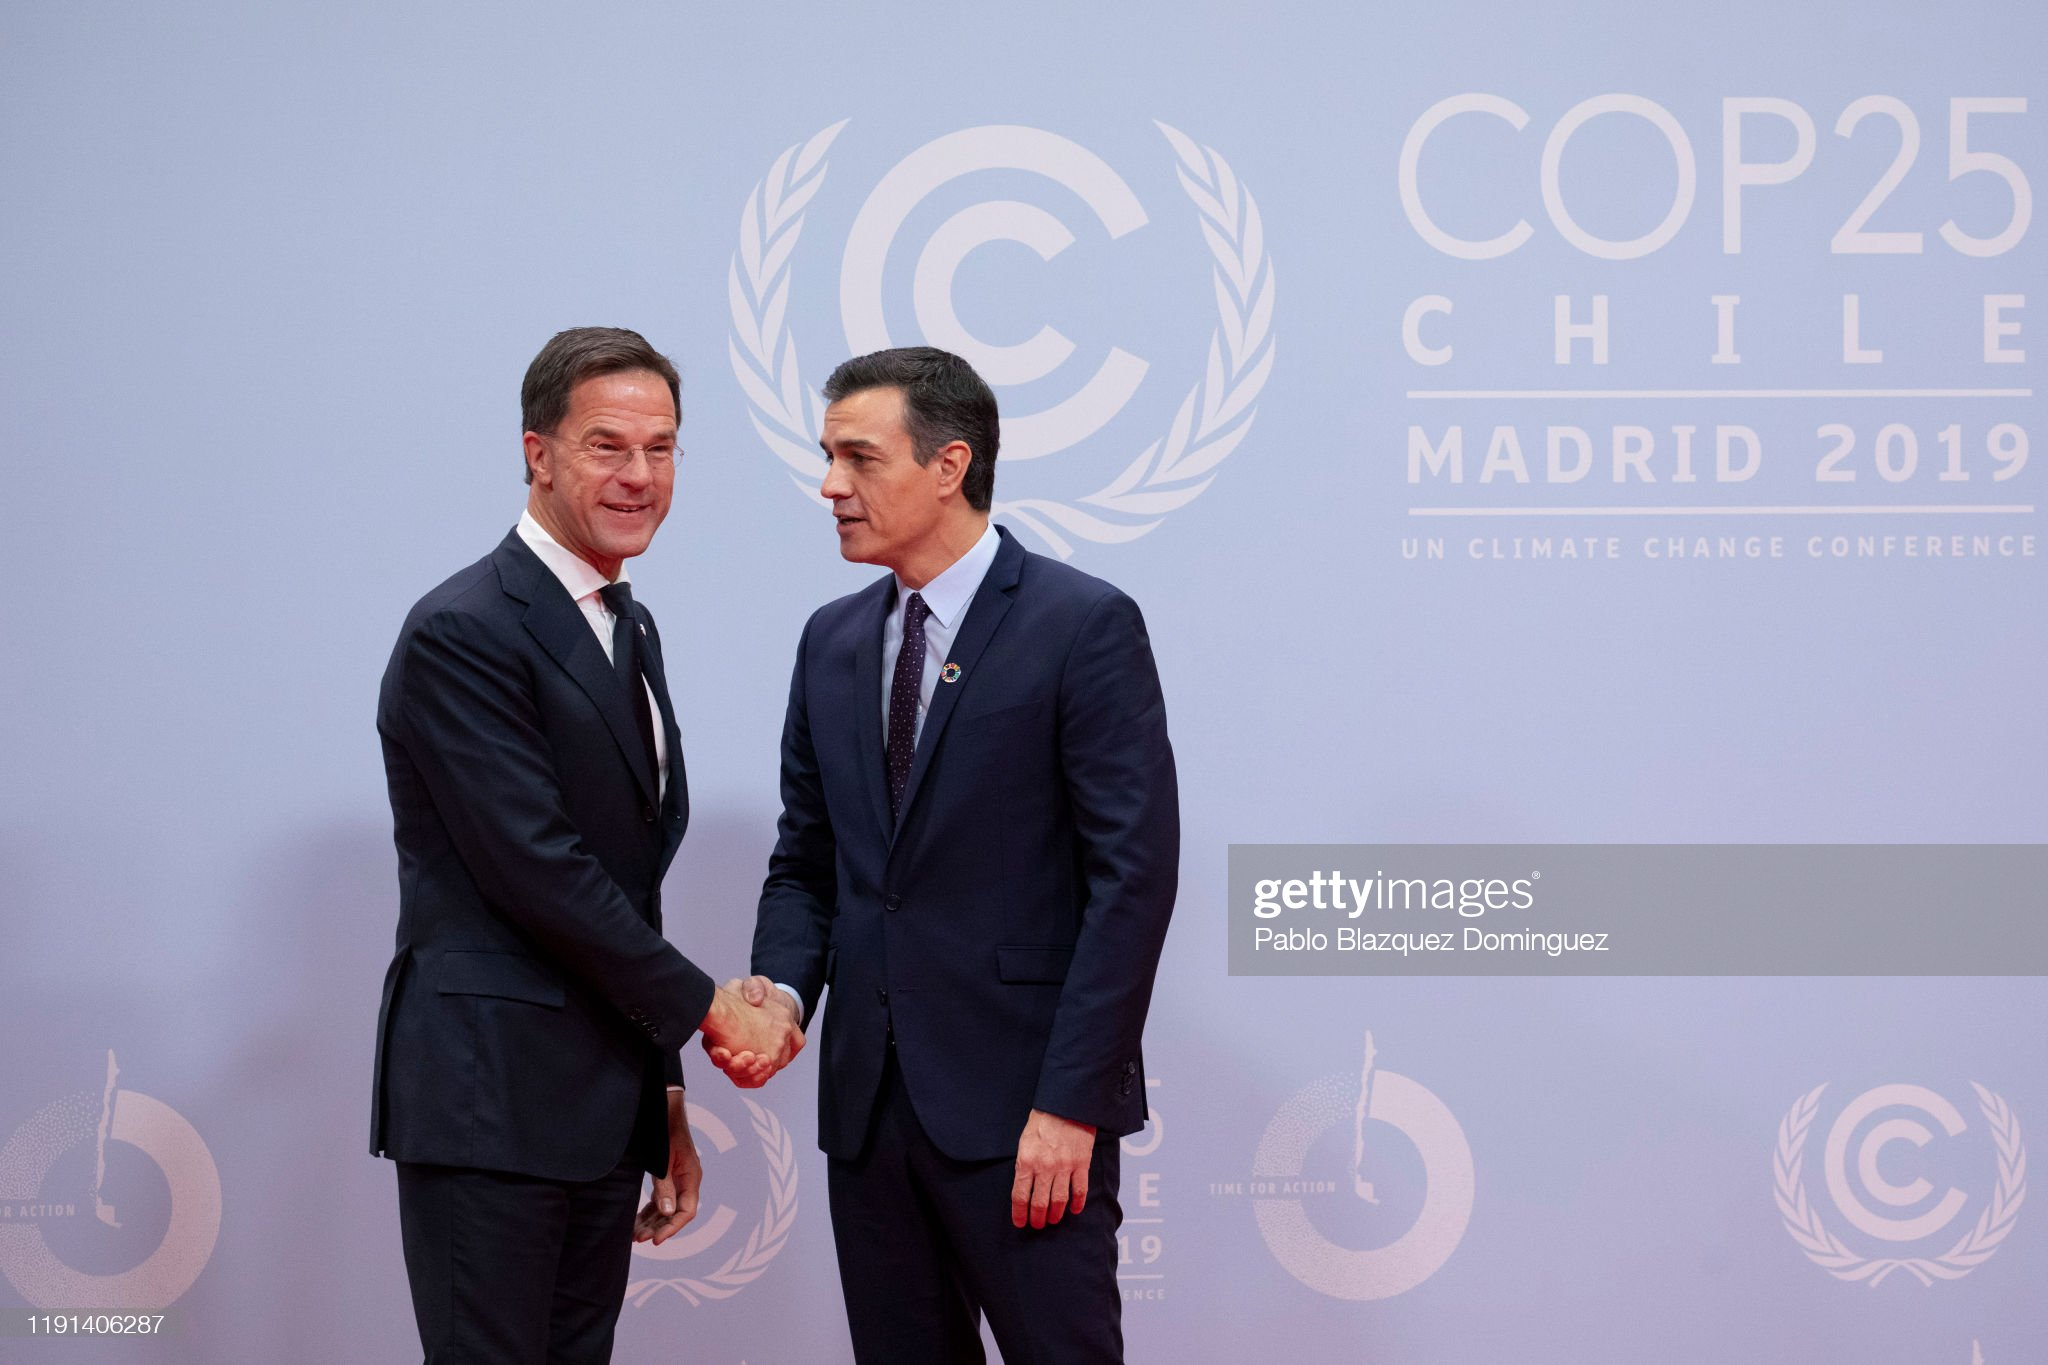 ¿Cuánto mide Mark Rutte? - Altura - Real height Mark-rutte-prime-minister-of-the-netherlands-is-greeted-by-spanish-picture-id1191406287?s=2048x2048